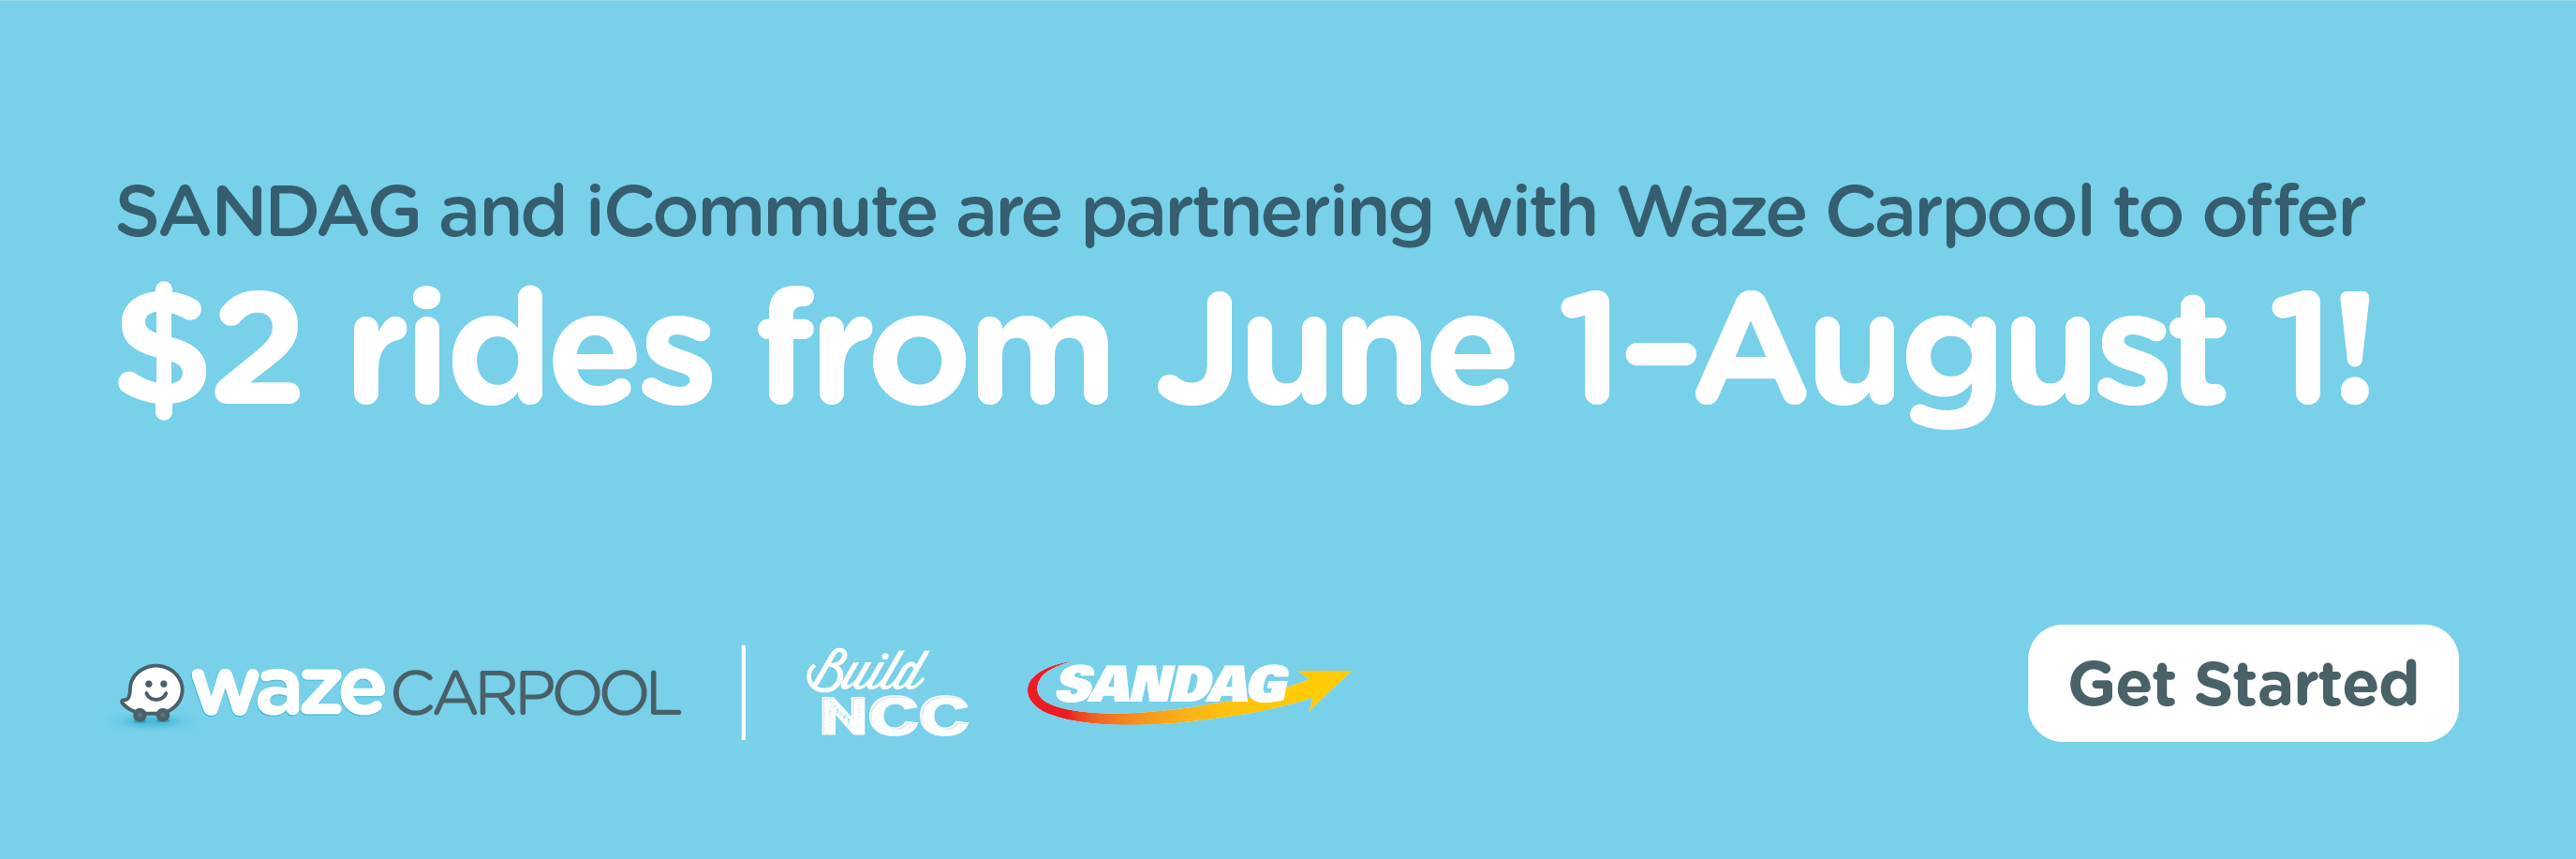 SANDAG and iCommute are partnering with Waze Carpool to offer $2 rights from June 1-August 1!